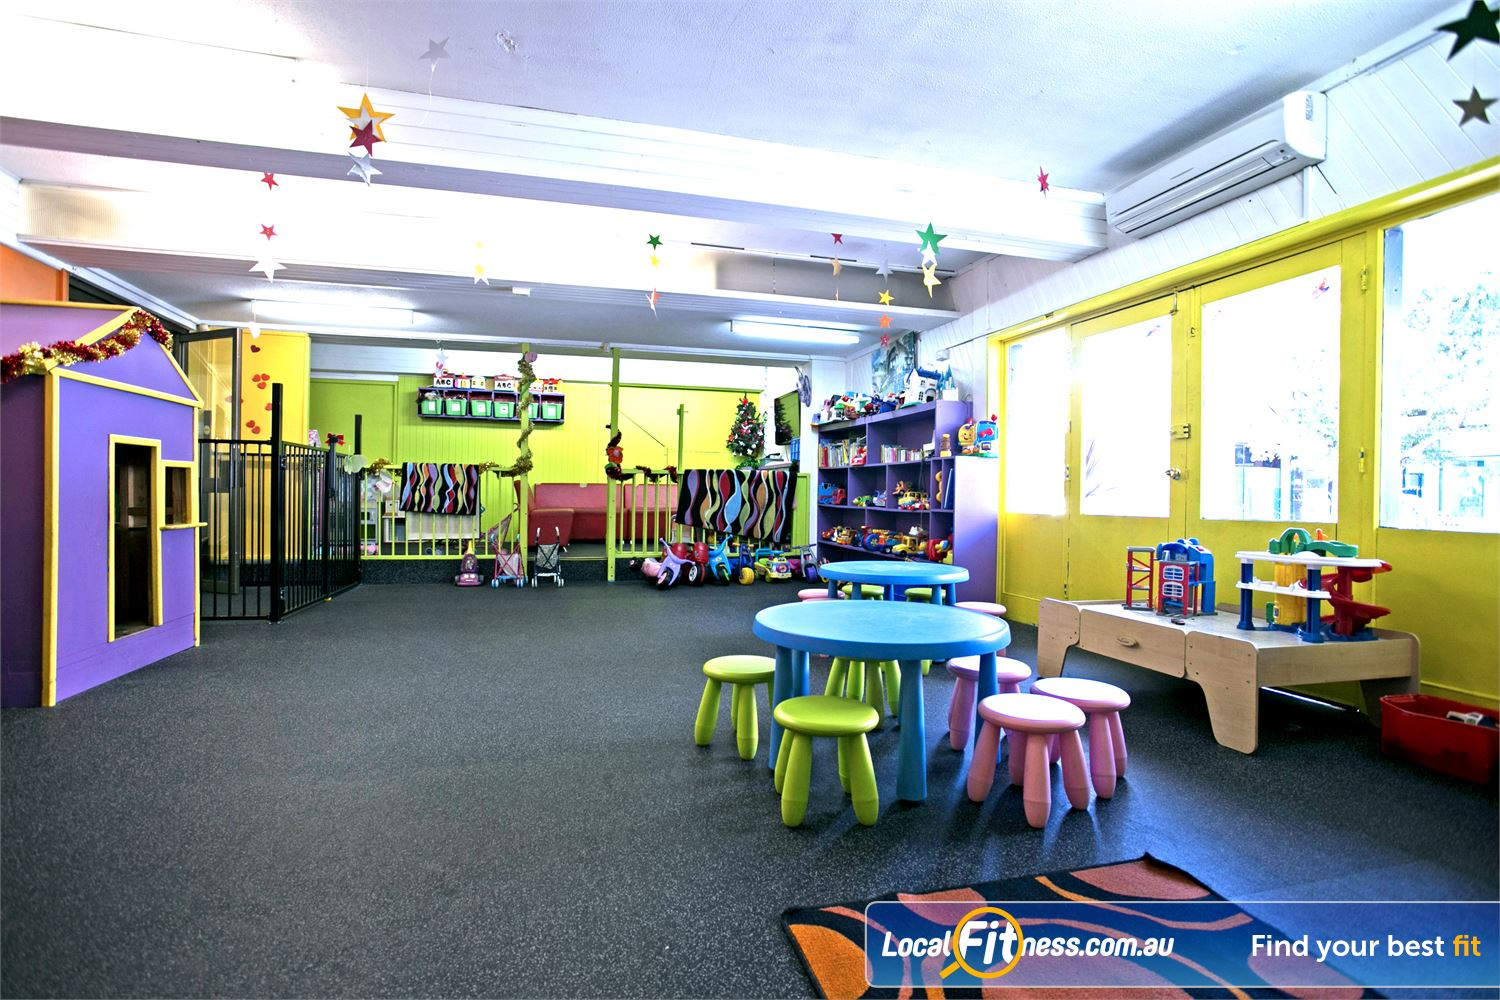 Goodlife Health Clubs Mitcham Kingswood Goodlife Kingswood provides on-site child minding services.